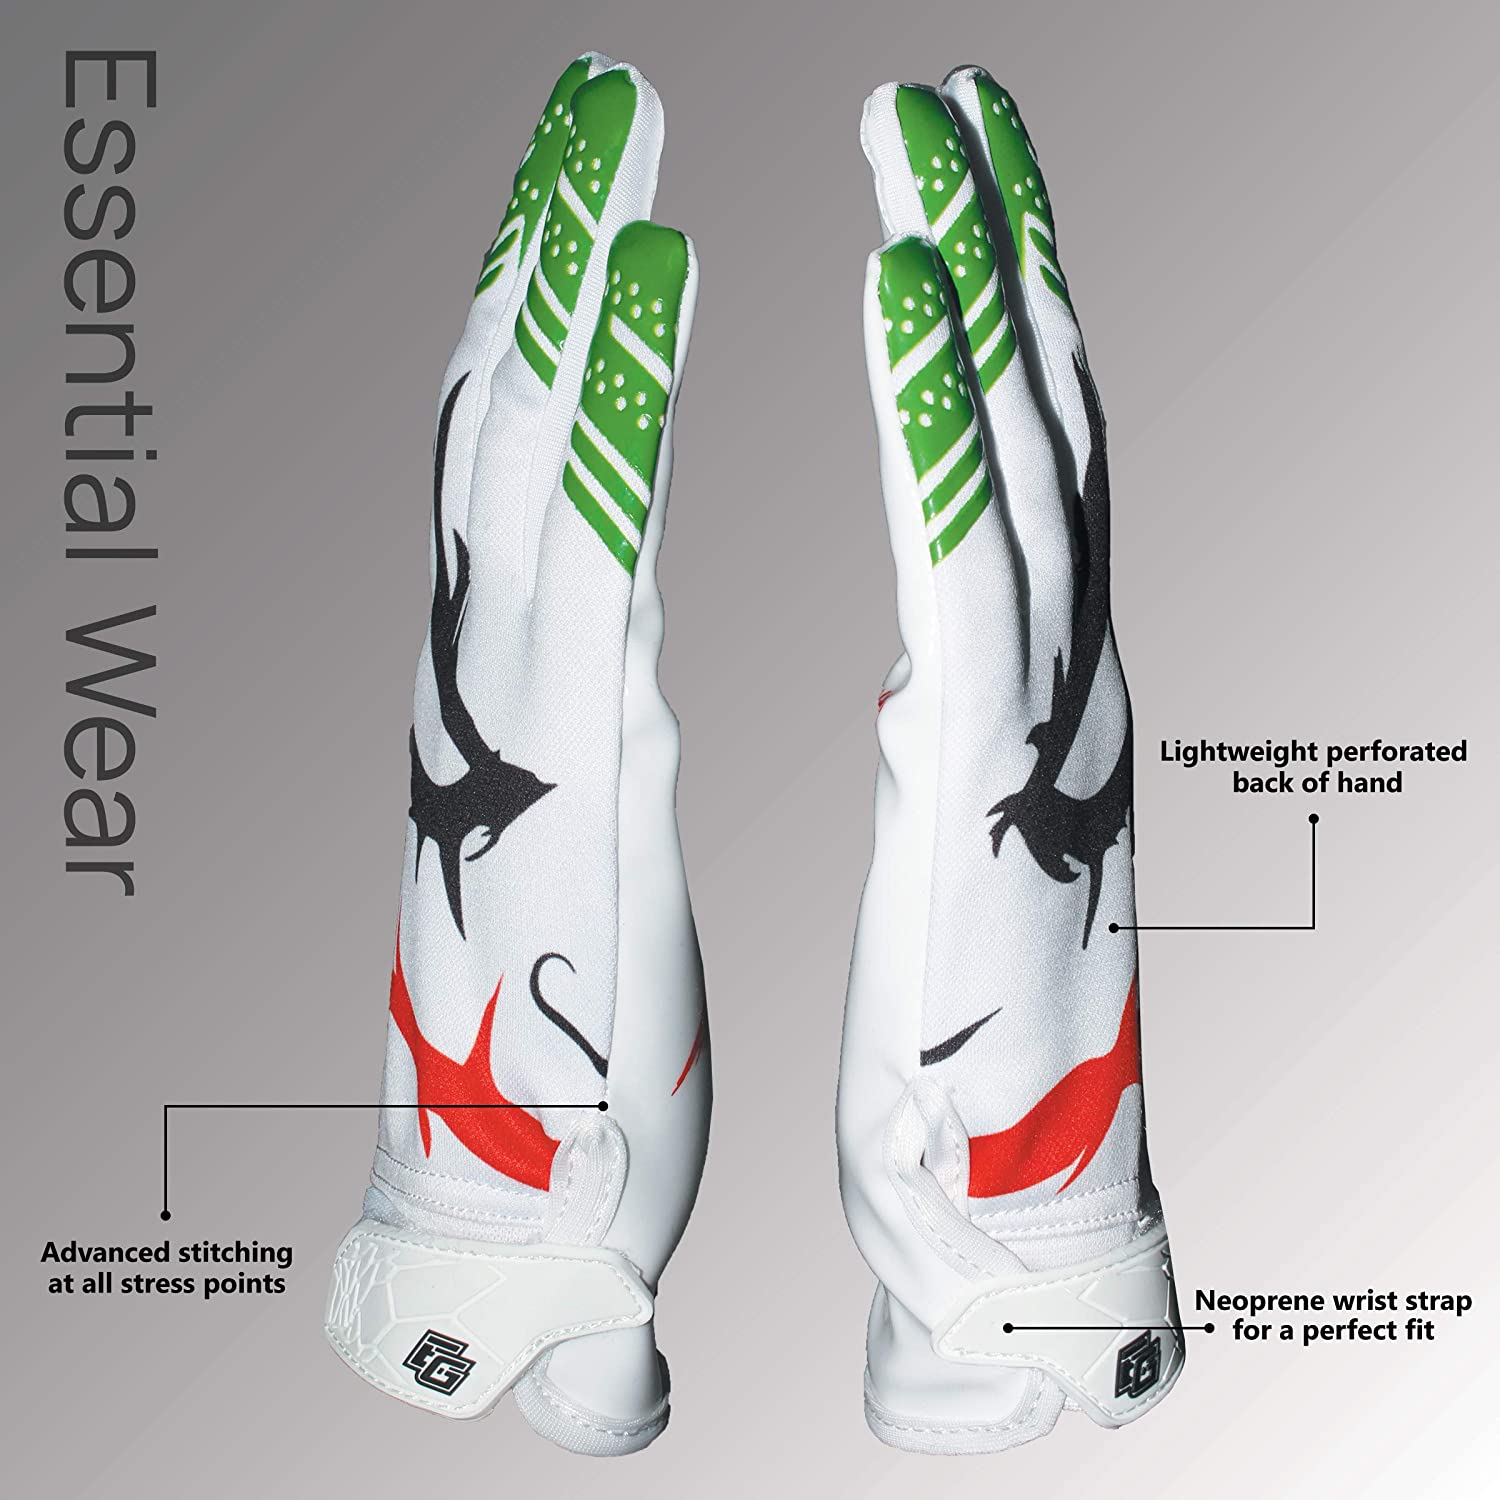 Essential Wear Football Gloves Men /& Women Performance Enhancer Adult Receiver Gloves with Super Tacky Grip for Ultimate Game Experience Adult Sizes Smiley Jester White Football Gloves